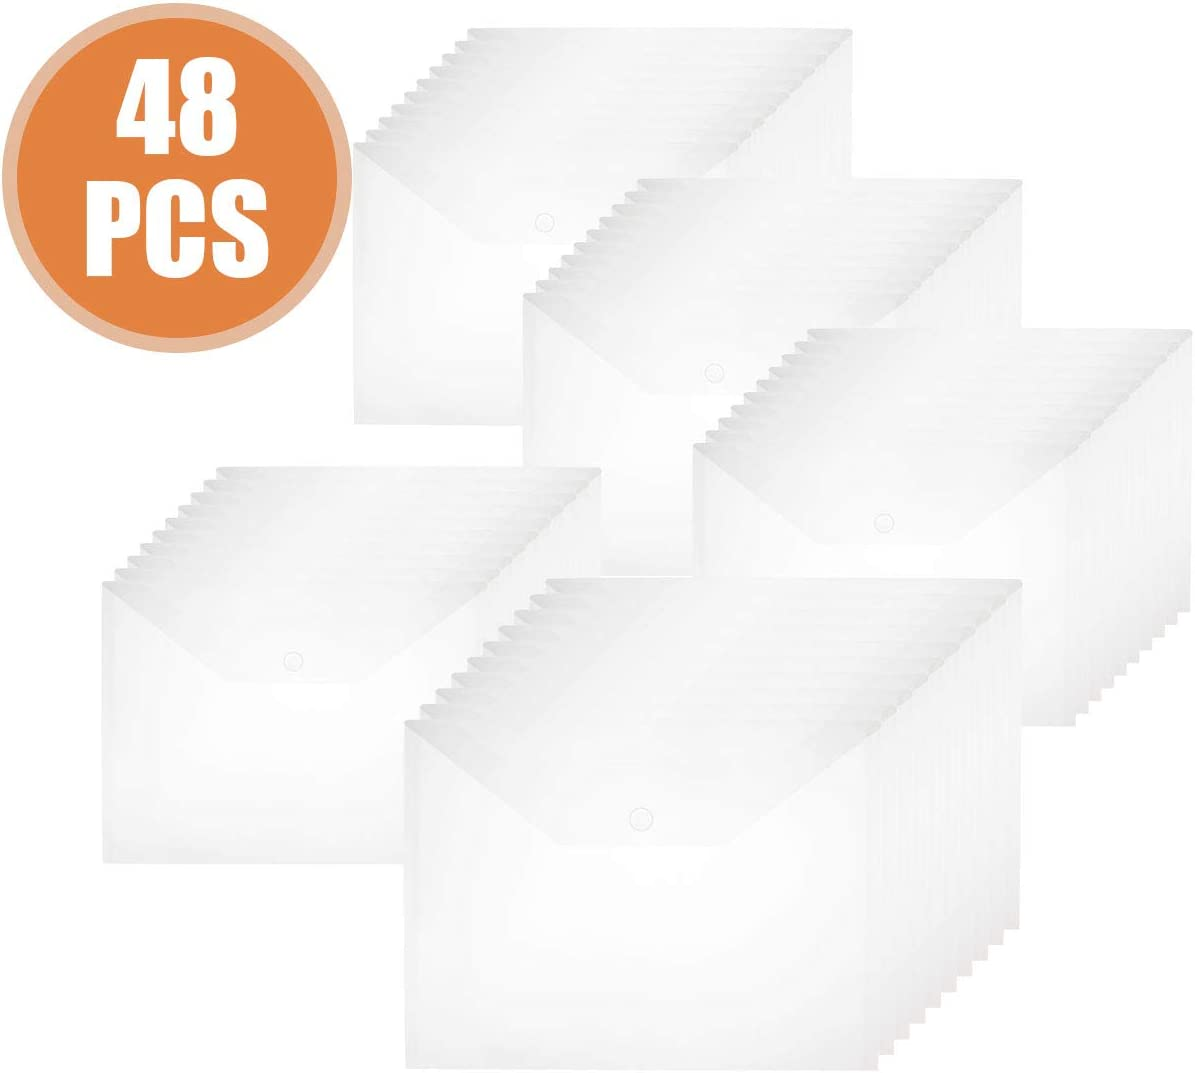 Abuff 48Pcs Plastic Envelopes, Clear Poly Envelopes File Folders with Button for Protecting Documents and Collating Sort, US Letter / A4 Size